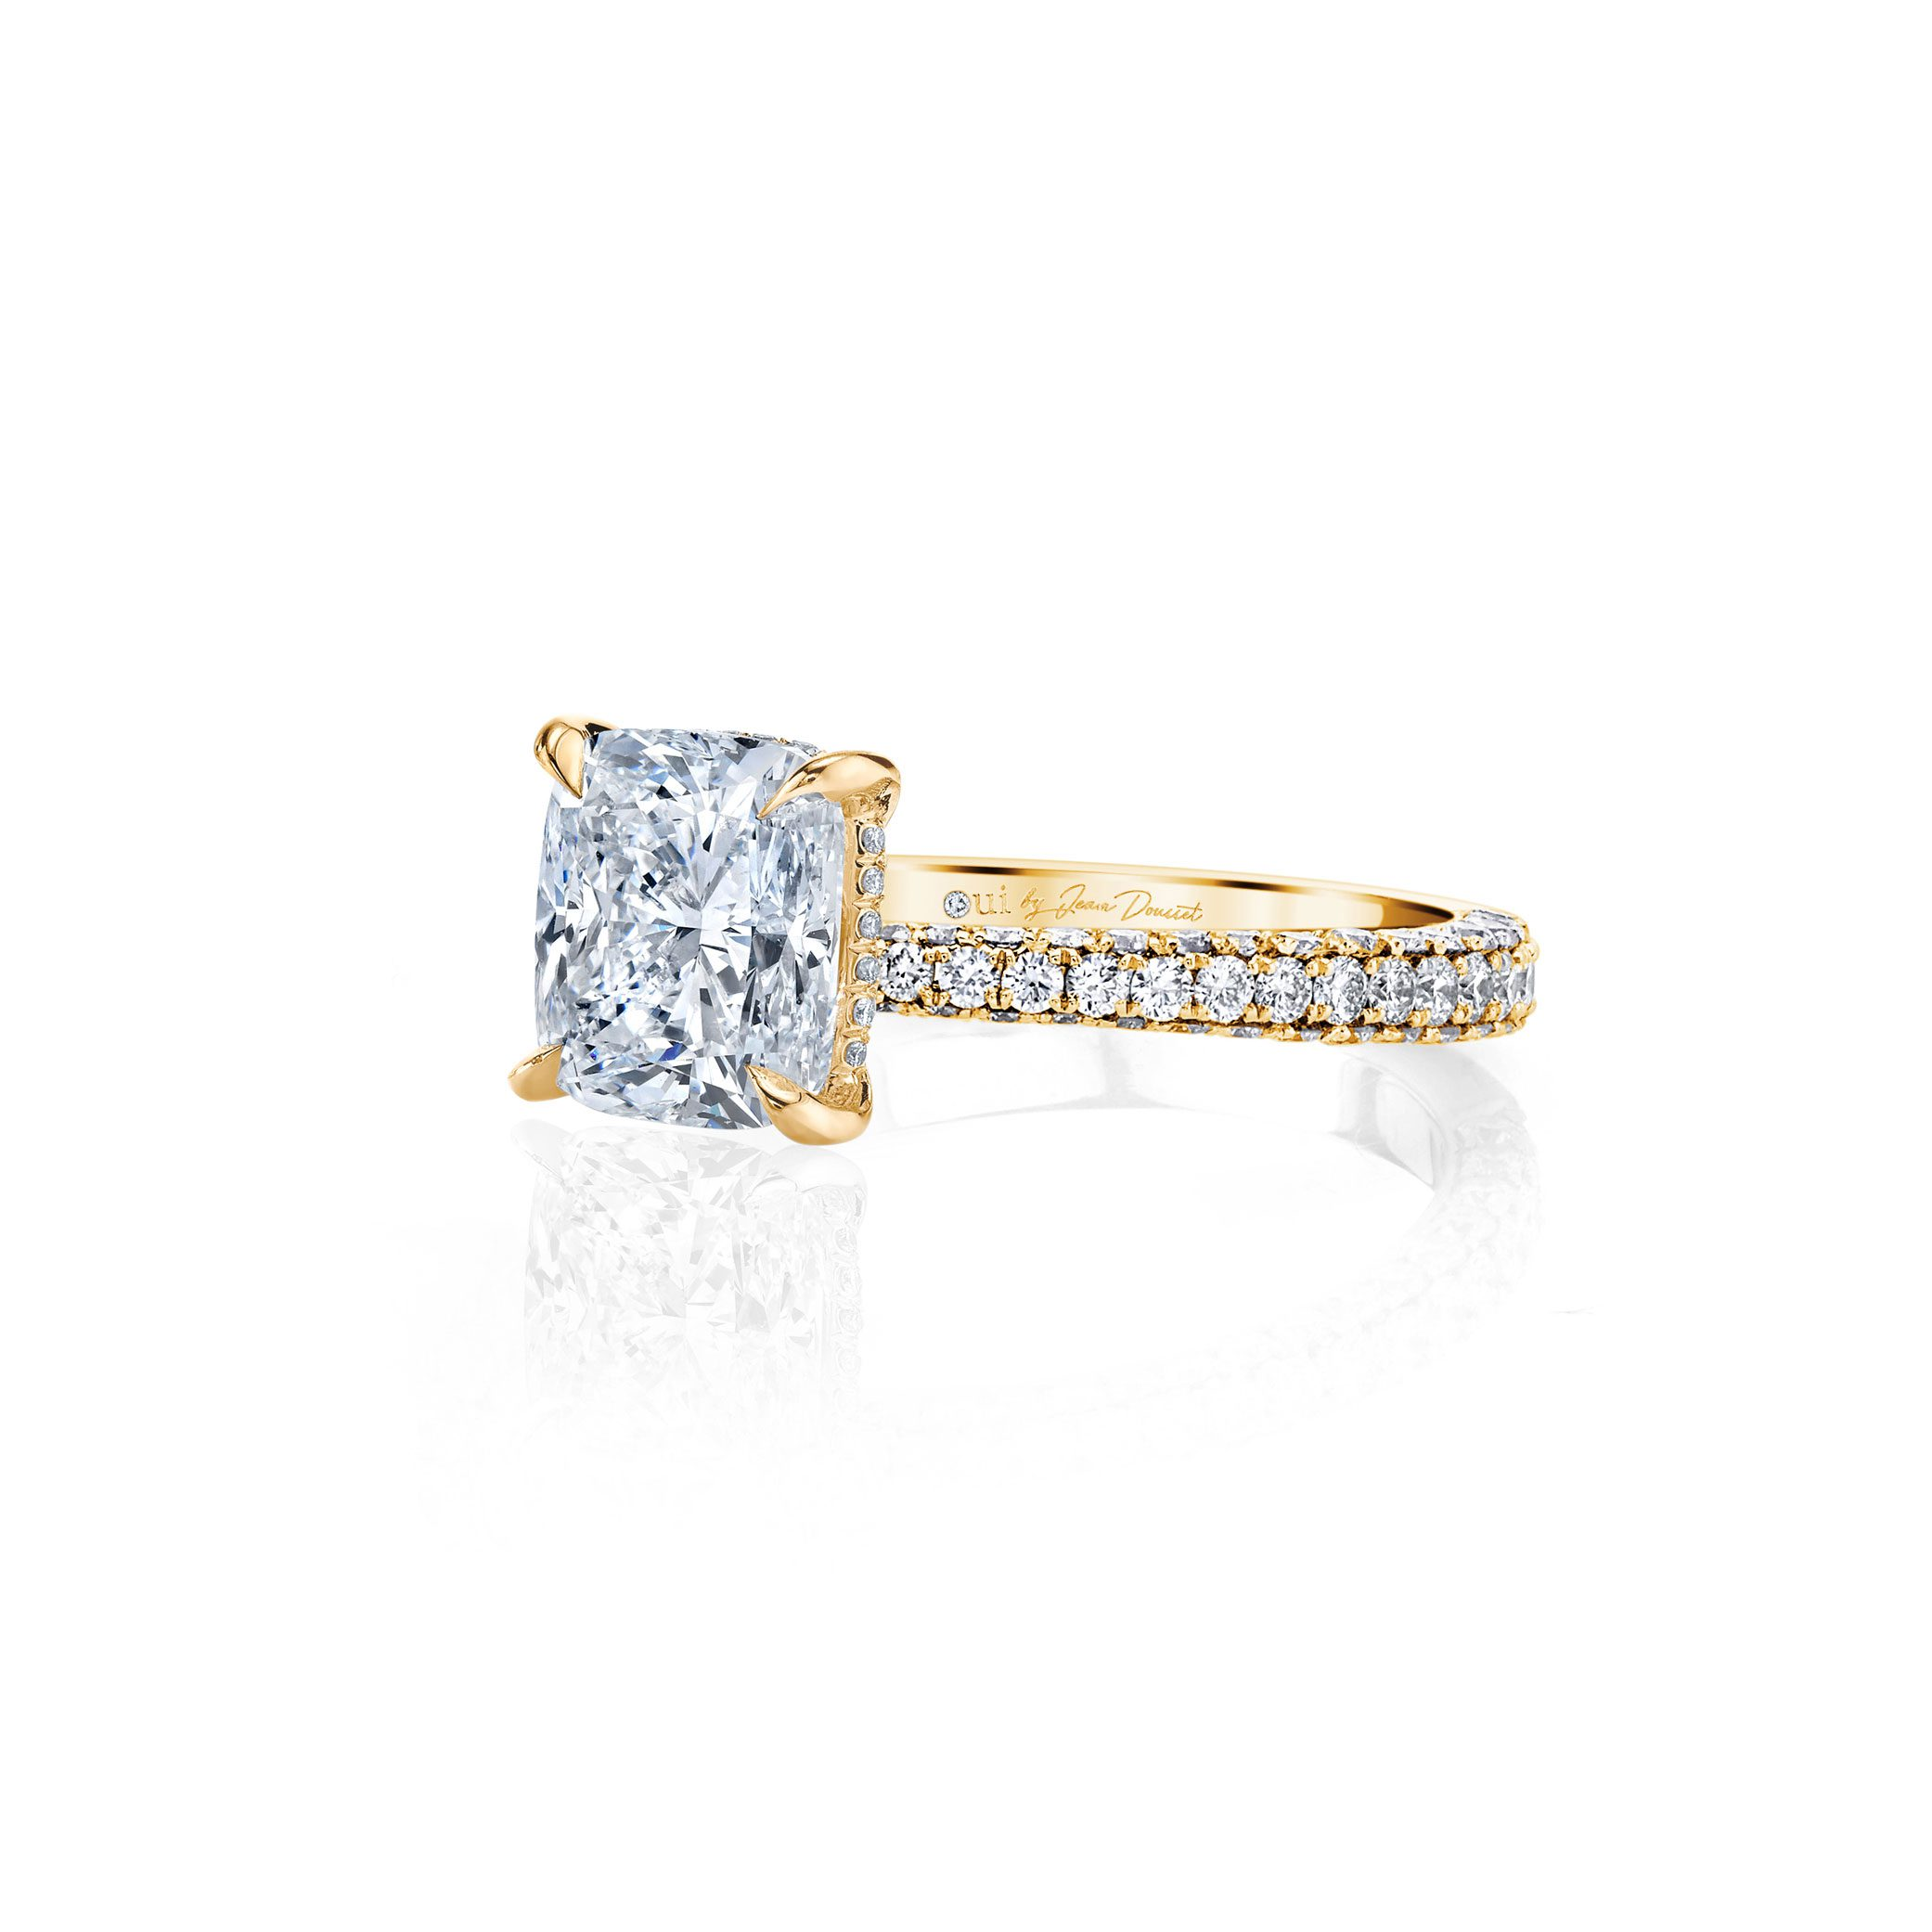 Jacqueline Cushion Cut Lab Grown Diamond Solitaire Engagement Ring Pavé Yellow Gold Band from Oui